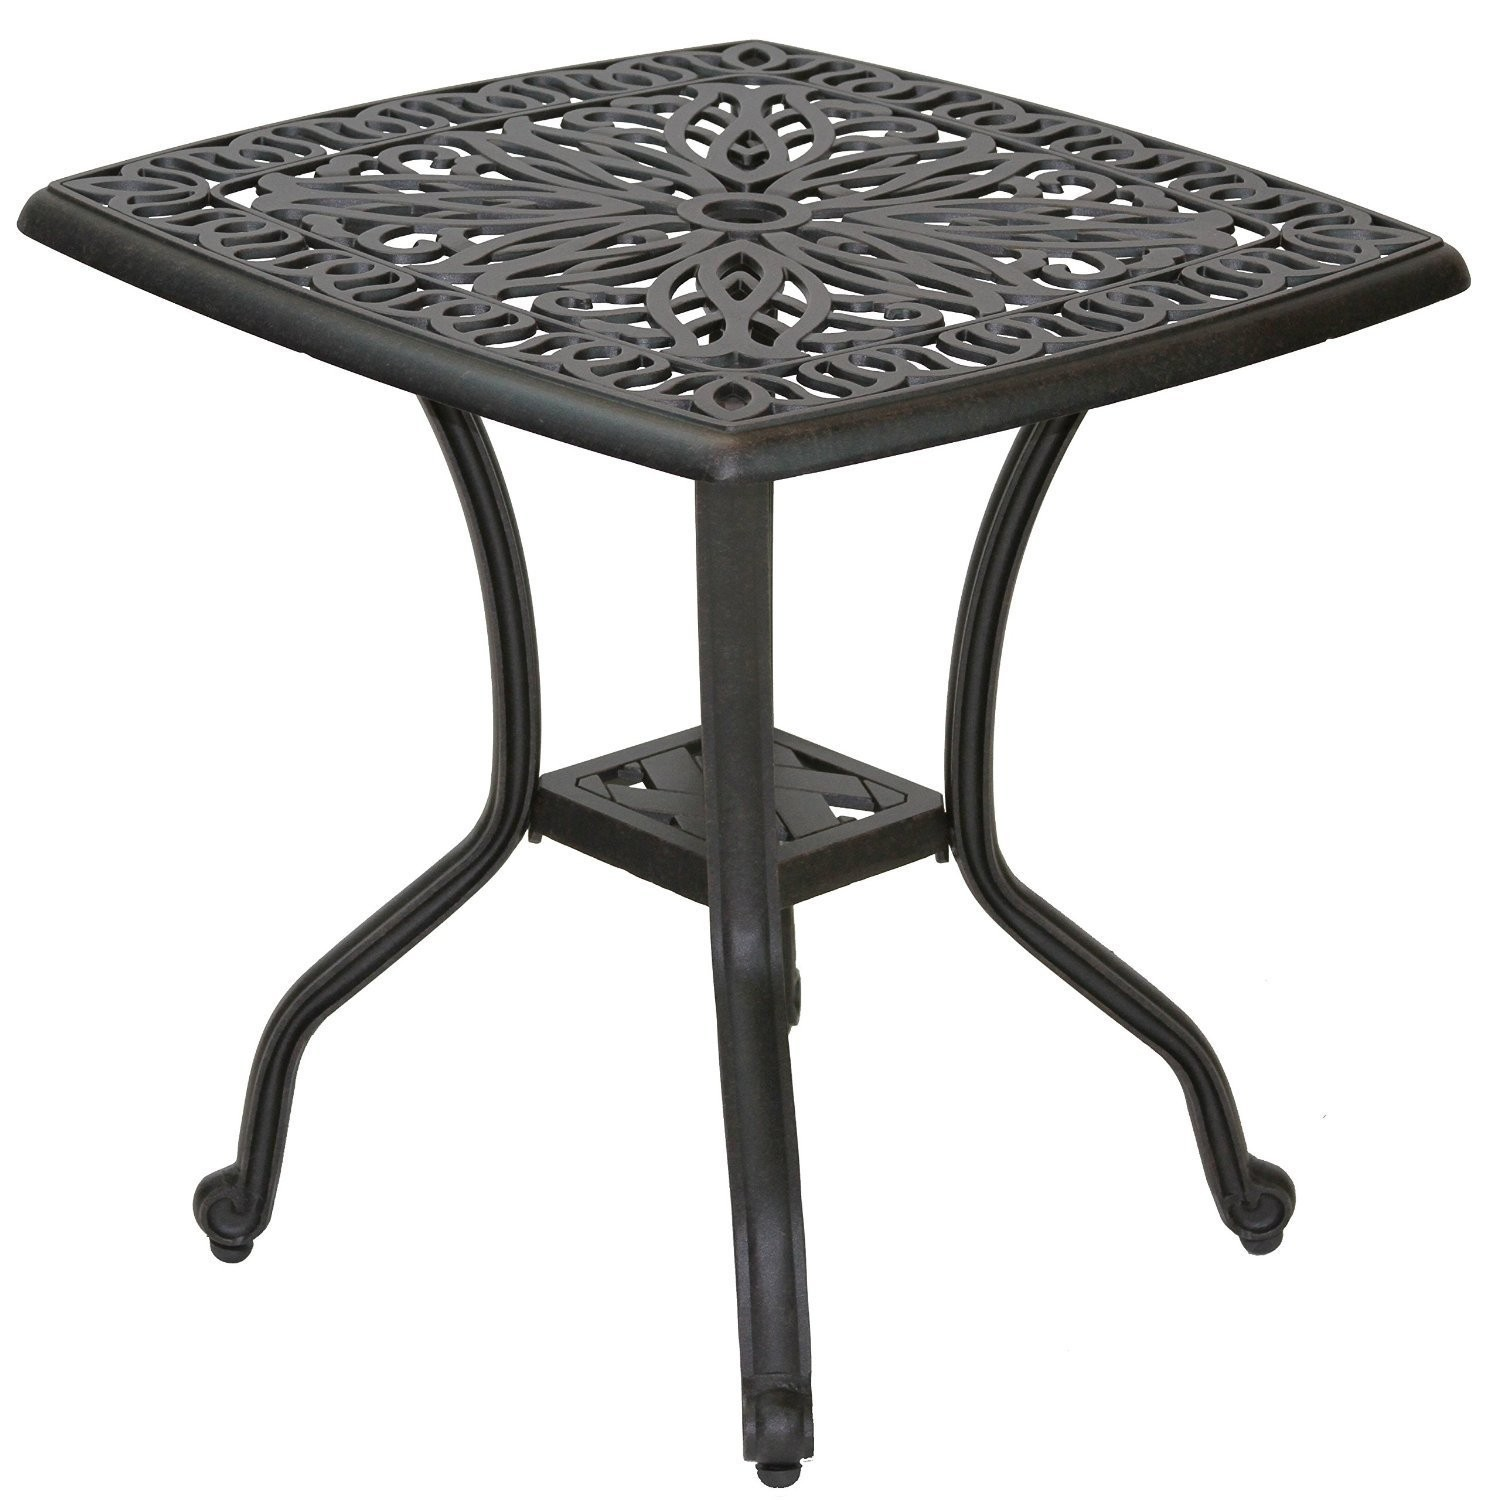 end tables outdoor coffee table small porch patio unique mandalay cast aluminum powder coated deep furniture glass top wrought iron plastic side metal storage indoor black full